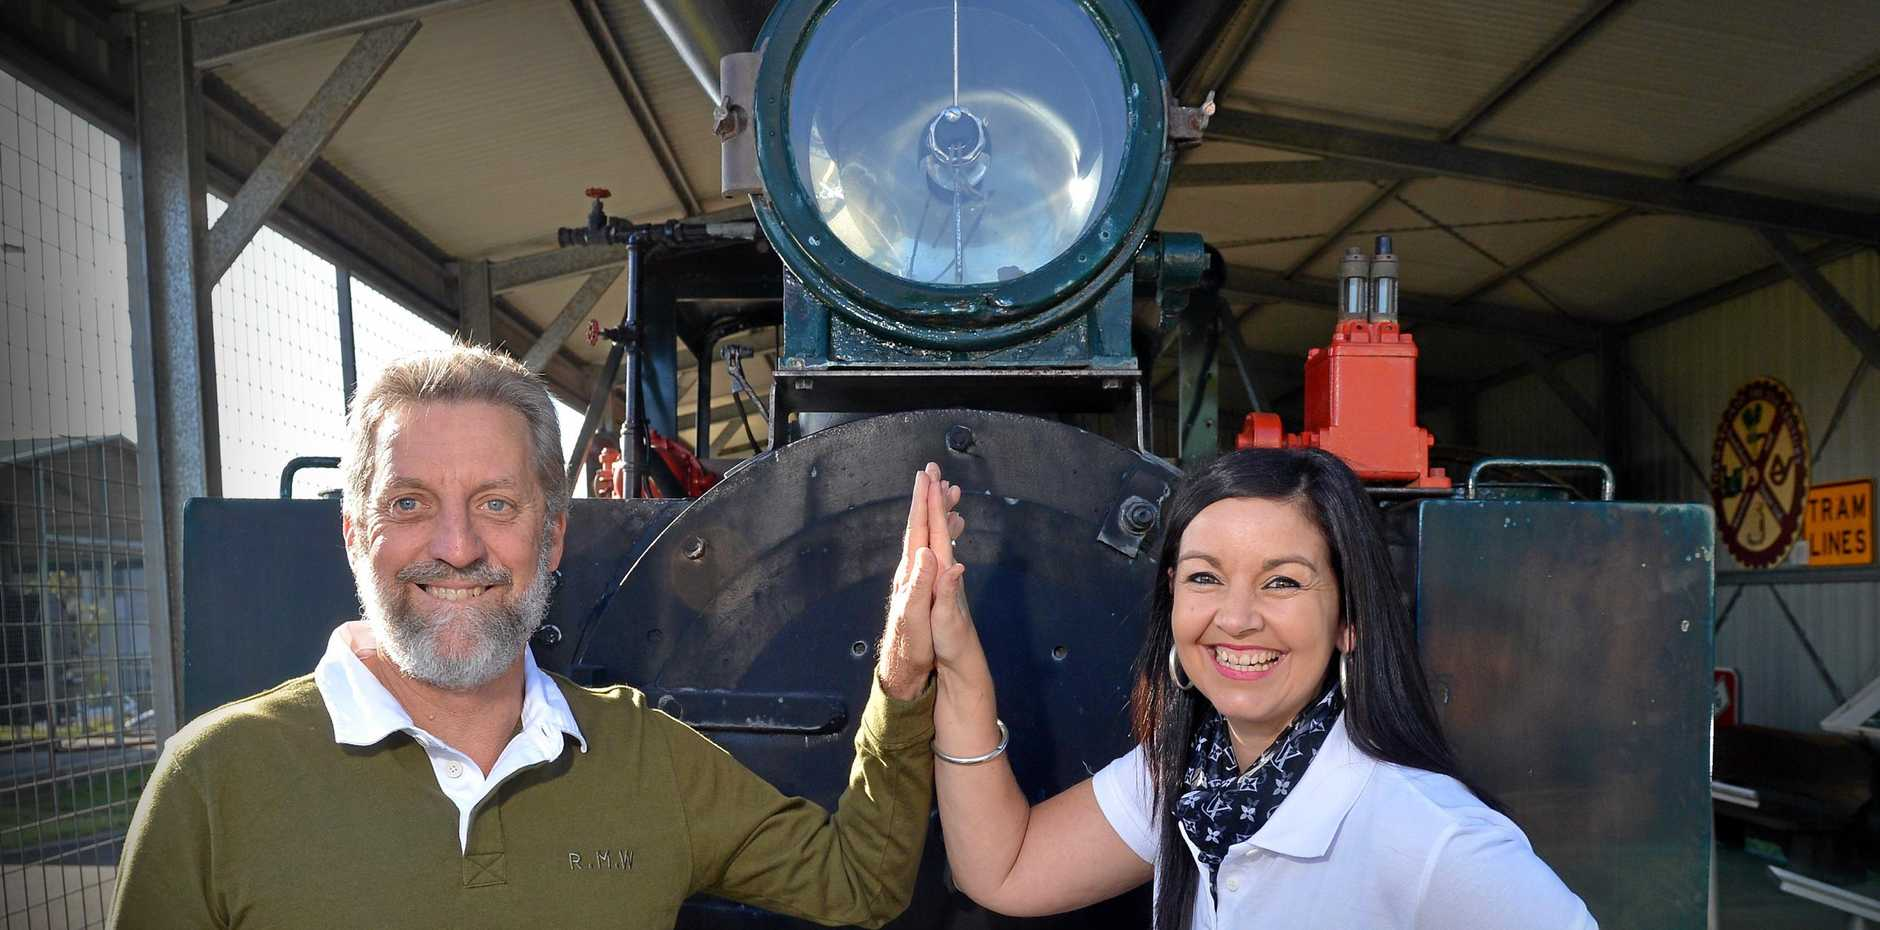 BIG WIN: Nambour Tram Co.'s Steve Barizer and Rhonda Billett-Haire have received retired trams from Victoria to help kick off their vision for the historic town.